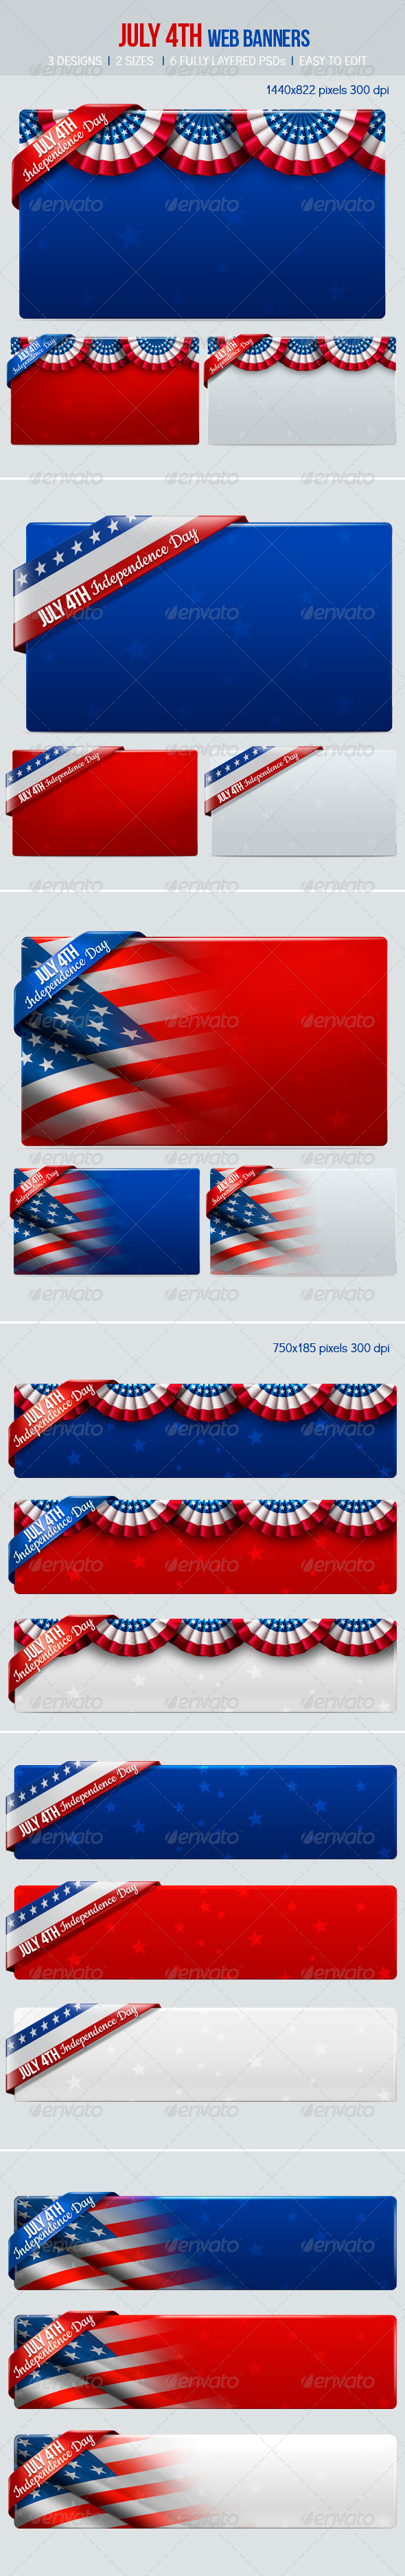 GraphicRiver July 4th Web Banners 4718256